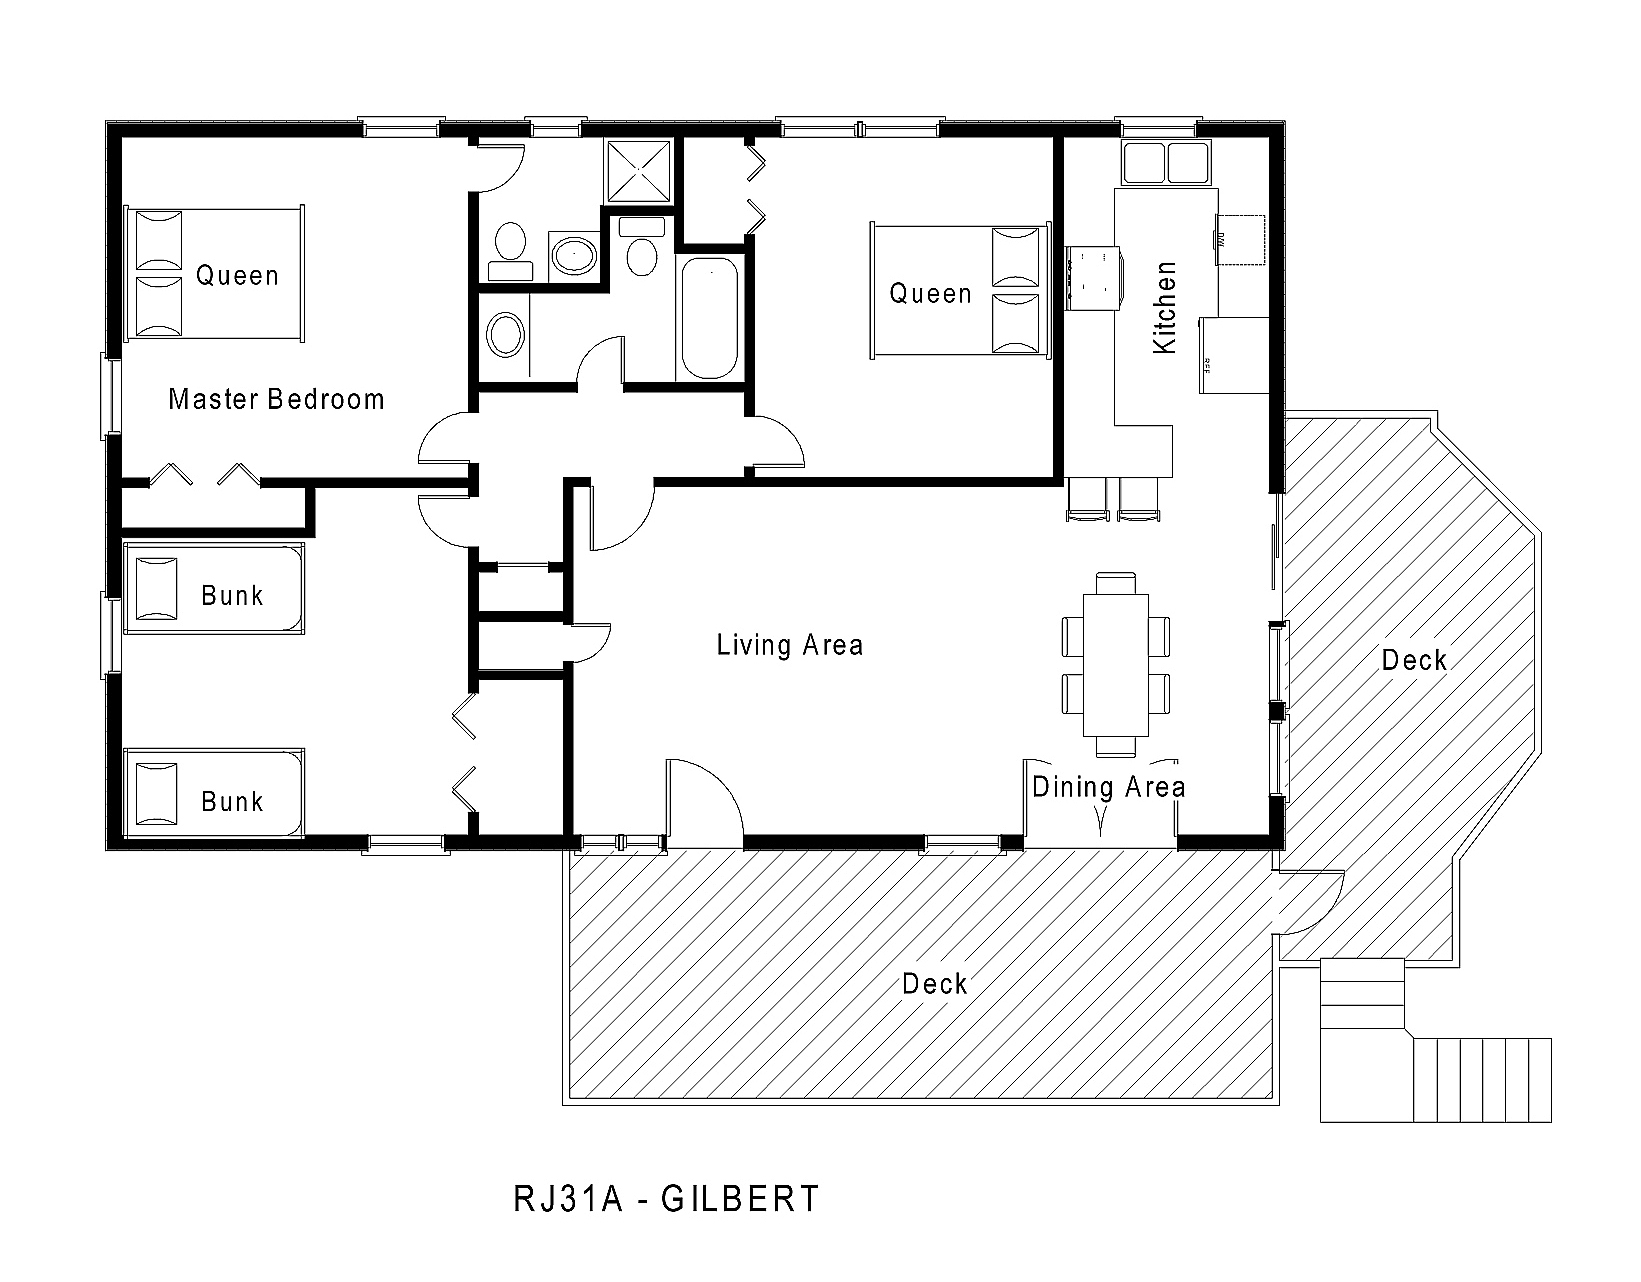 rj31a gilbert floorplan level midgett realty